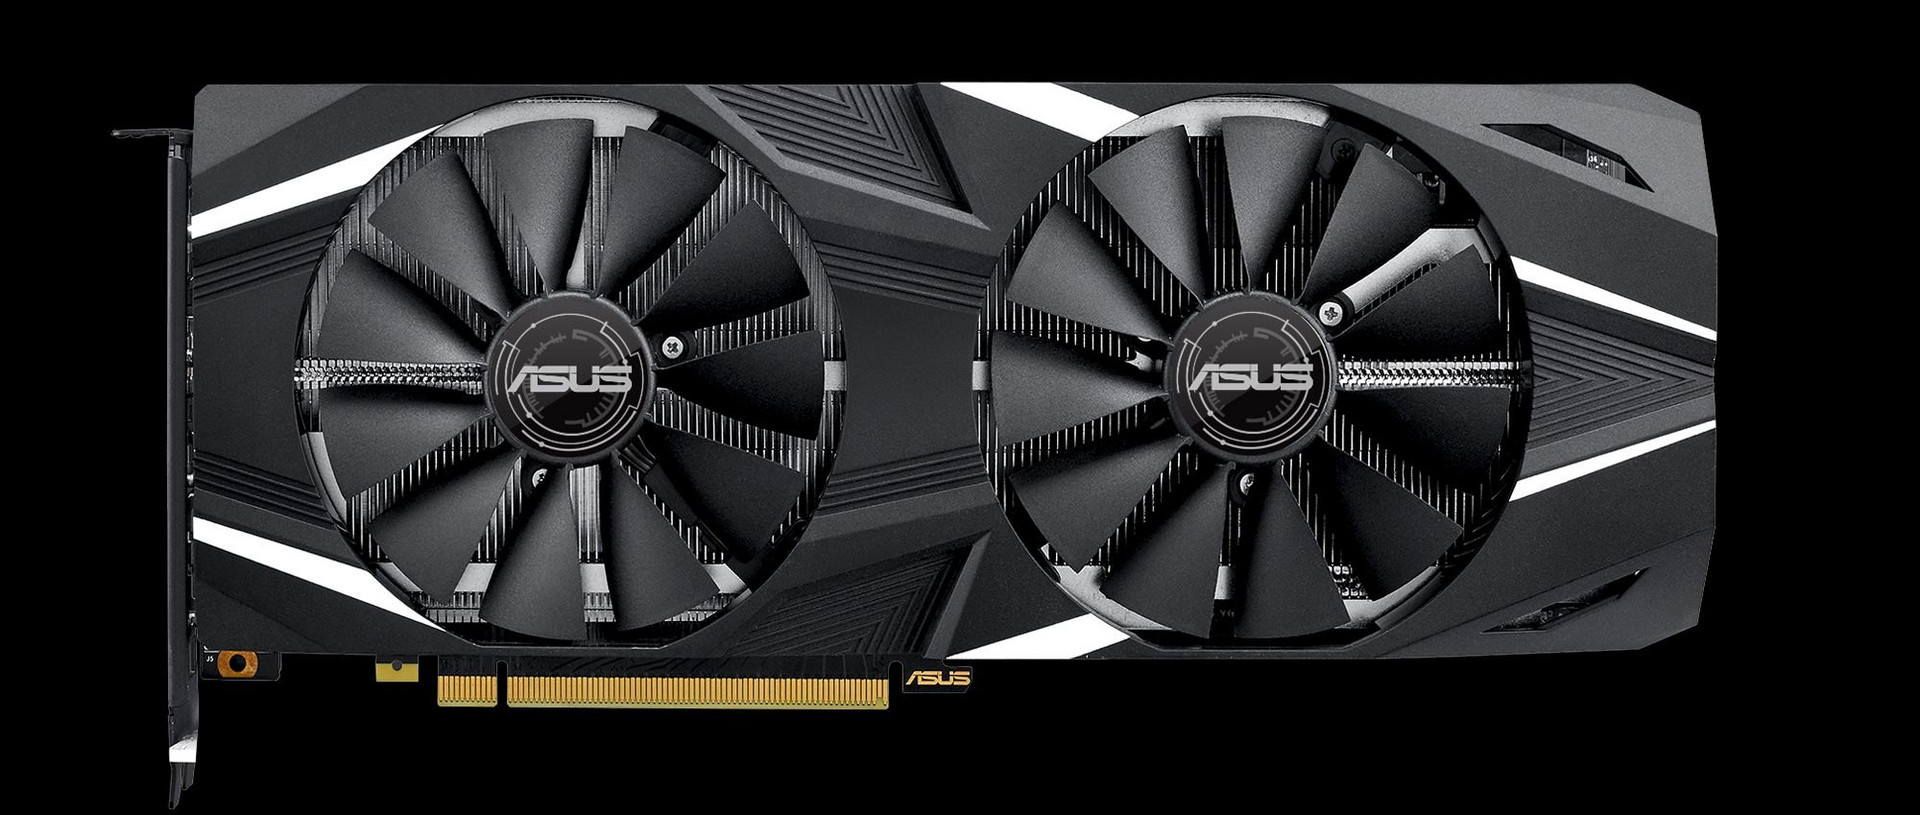 Asus will have three trims of the GeForce RTX 2070 coming